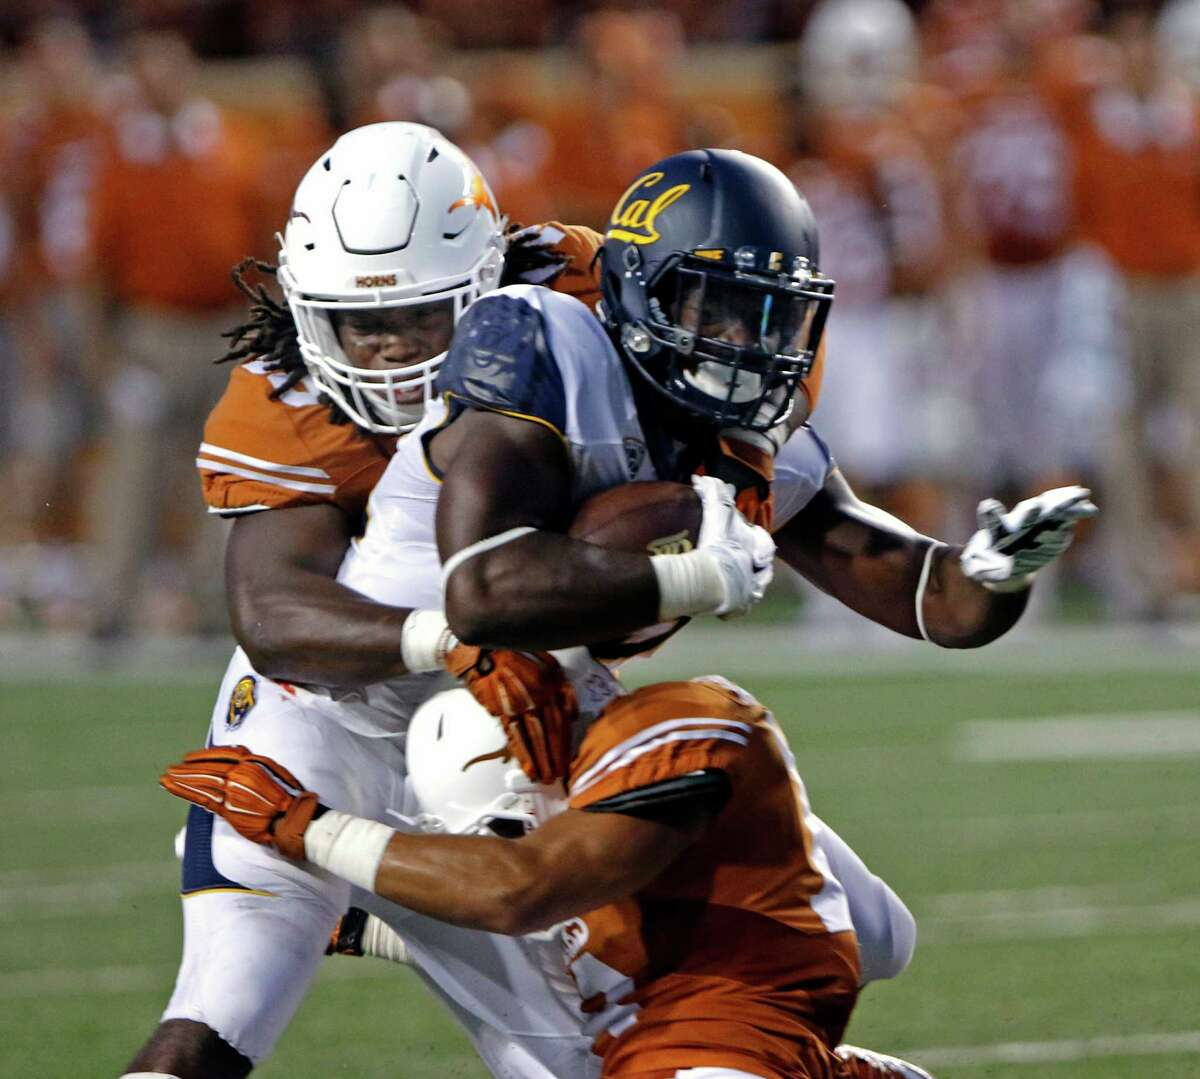 Texas linebacker Malik Jefferson, left, tackles California's Vic Enwere, center, with the help from Kevin Vaccaro, right, during the first half of an NCAA college football game, Saturday, Sept. 19, 2015, in Austin, Texas. California won 45-44. (AP Photo/Michael Thomas)